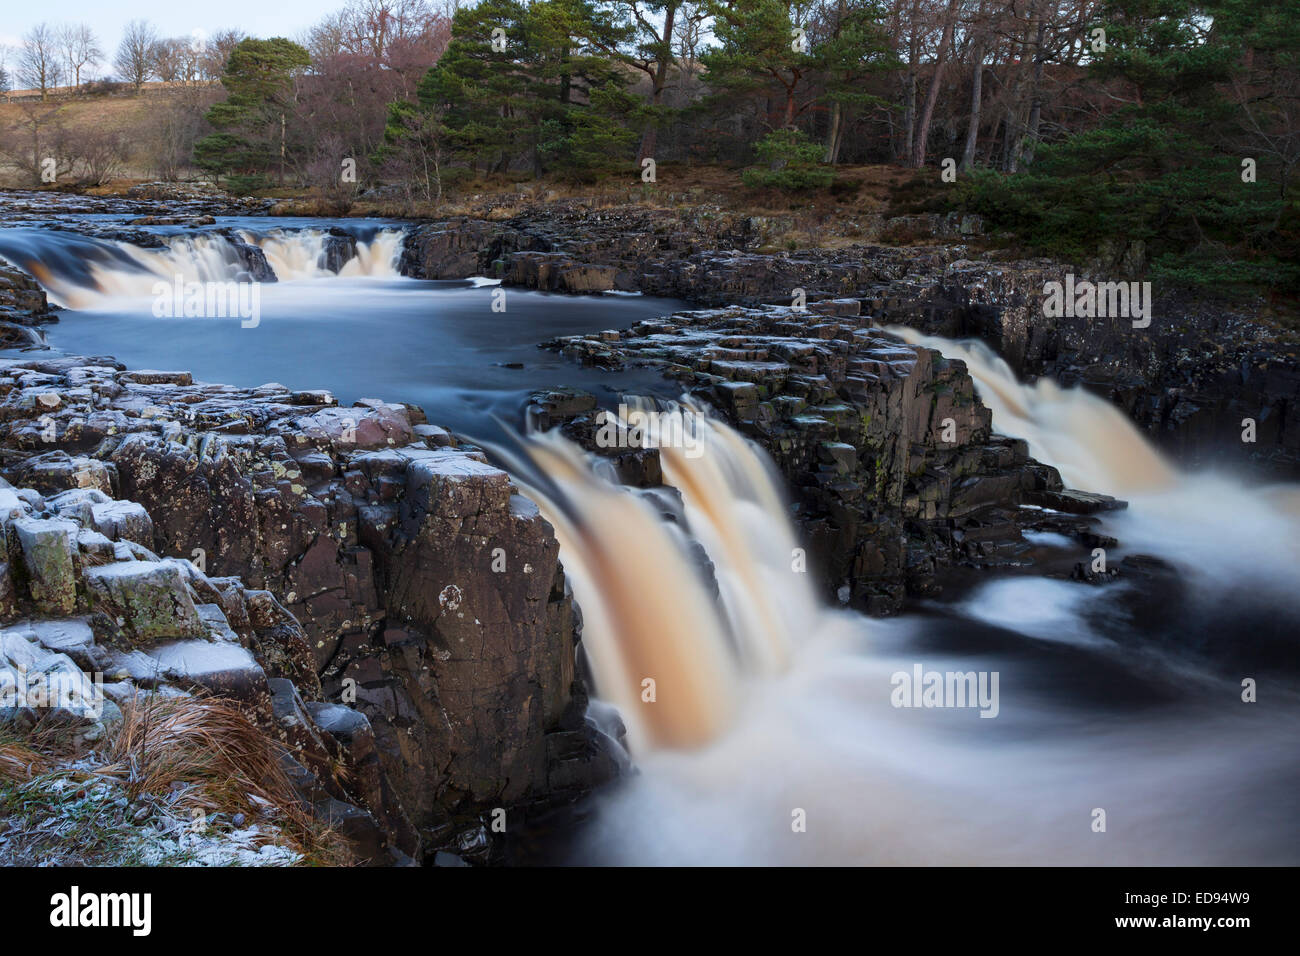 The River Tees Flowing Over the Whin Sill Rocks of Low Force, Bowlees Upper Teesdale County Durham UK - Stock Image